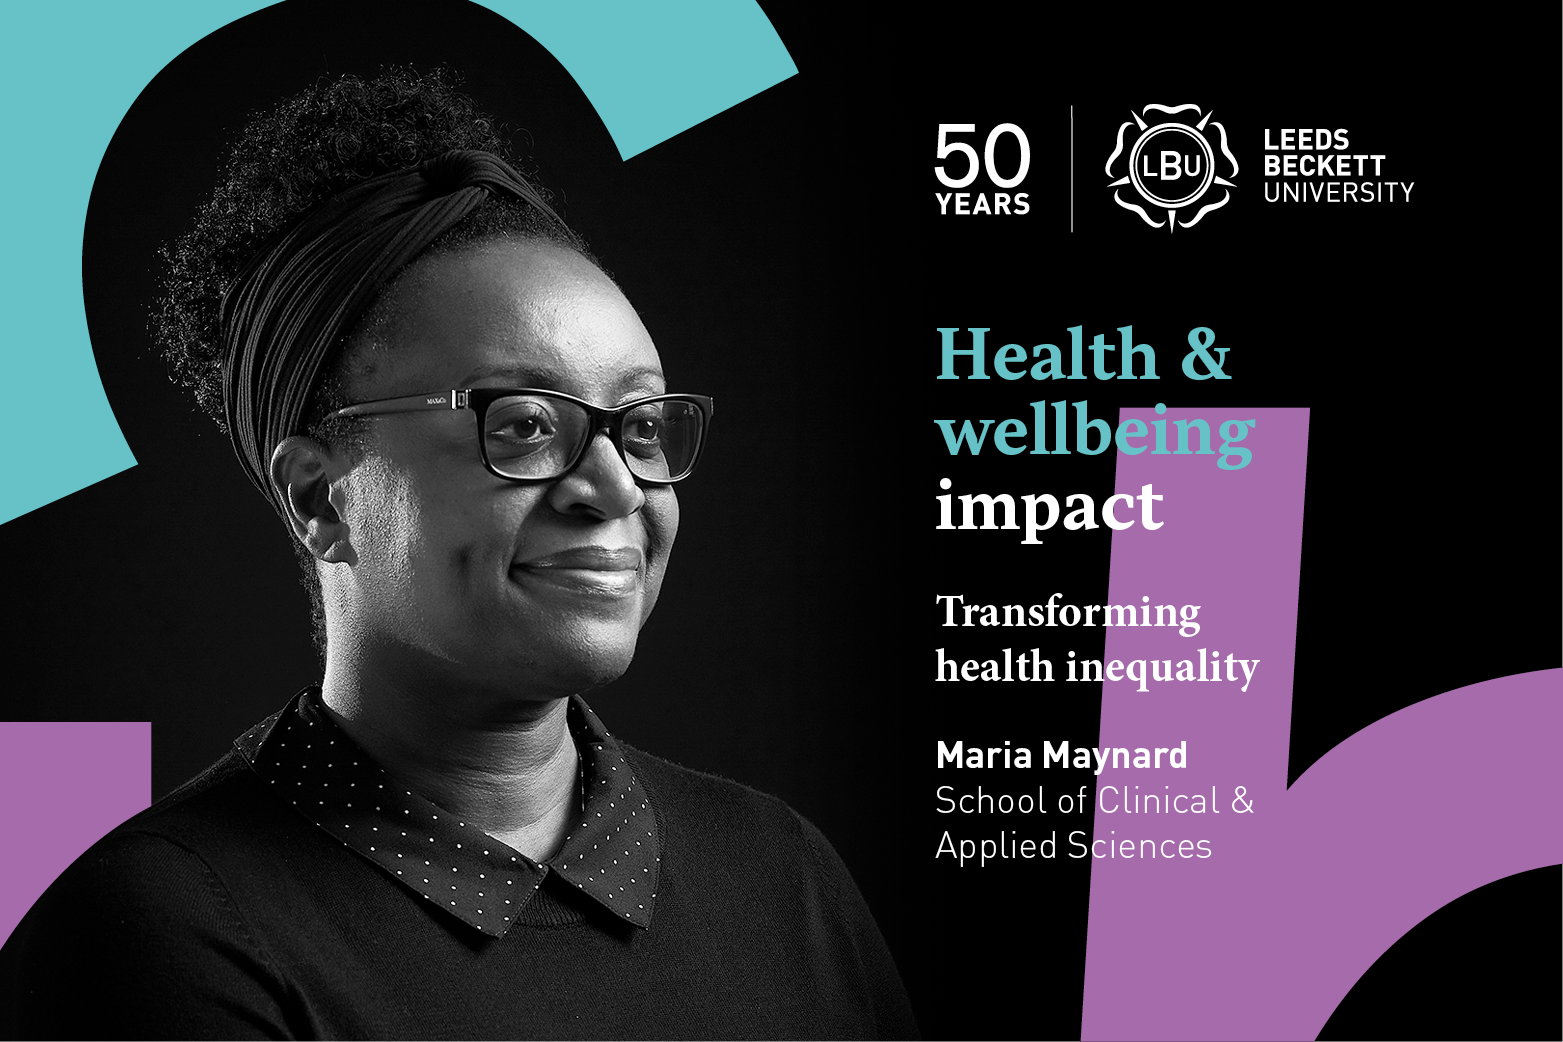 Transforming health inequality